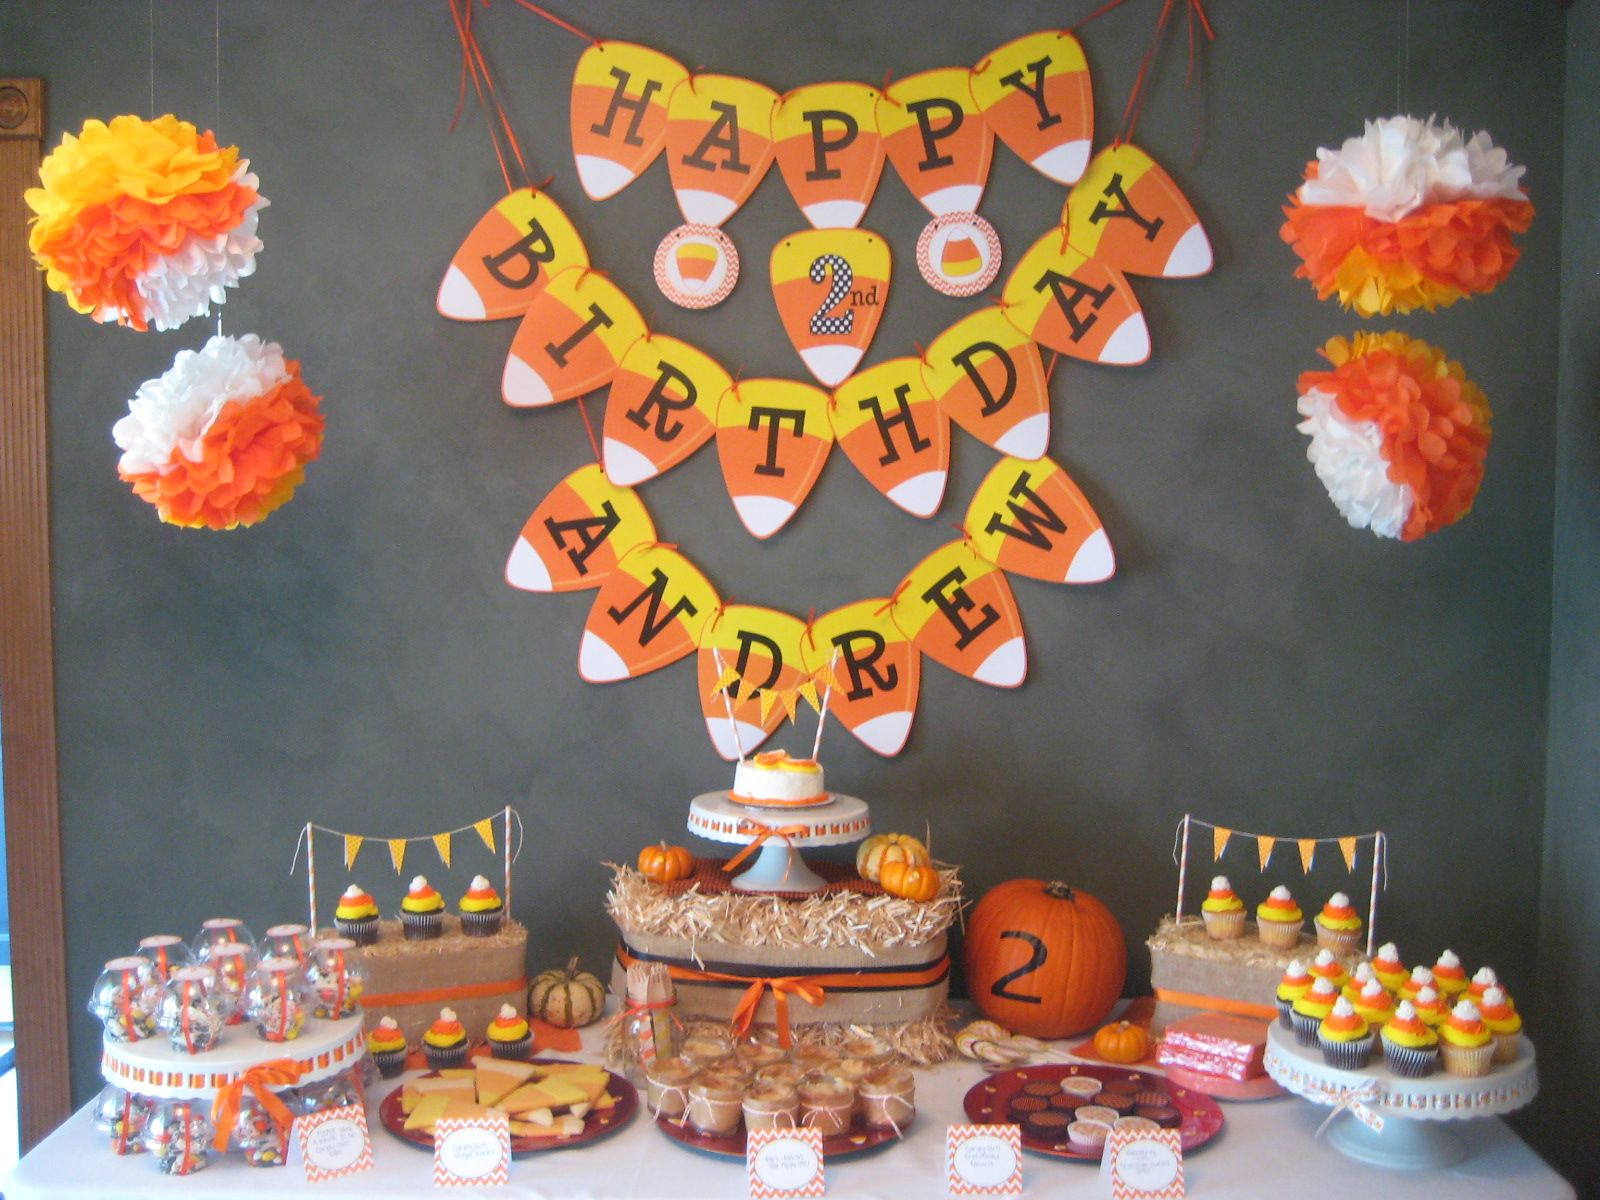 Halloween Themed Birthday Party For Toddler.Halloween Themed Kid Party Ideas Ownercartoon Co